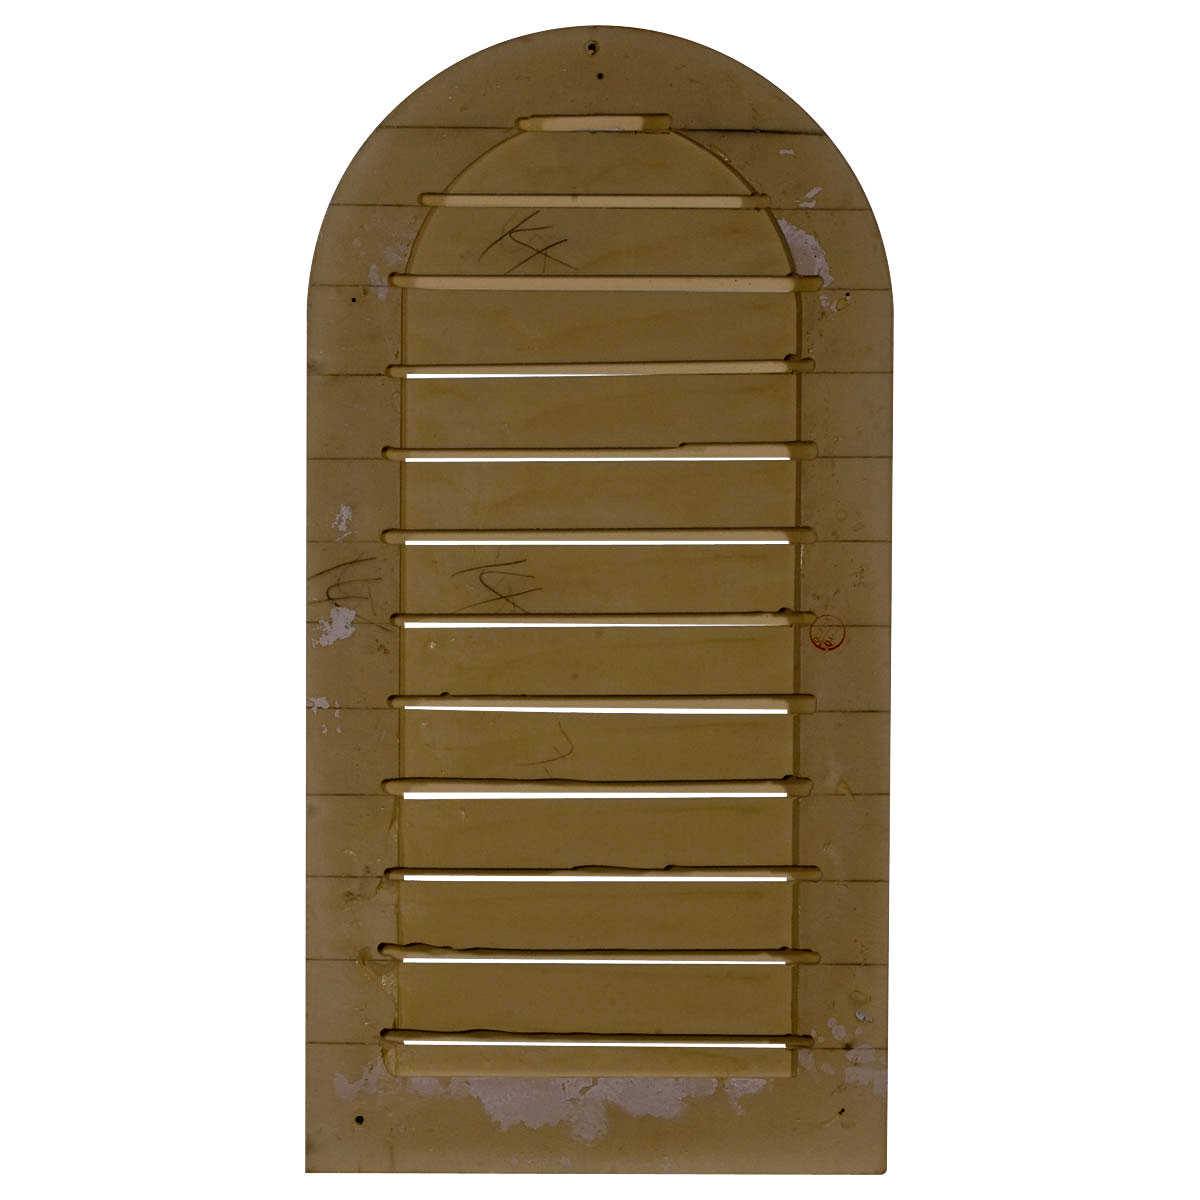 12'W x 24'H x 1 7/8'P, Cathedral Gable Vent Louver, Functional